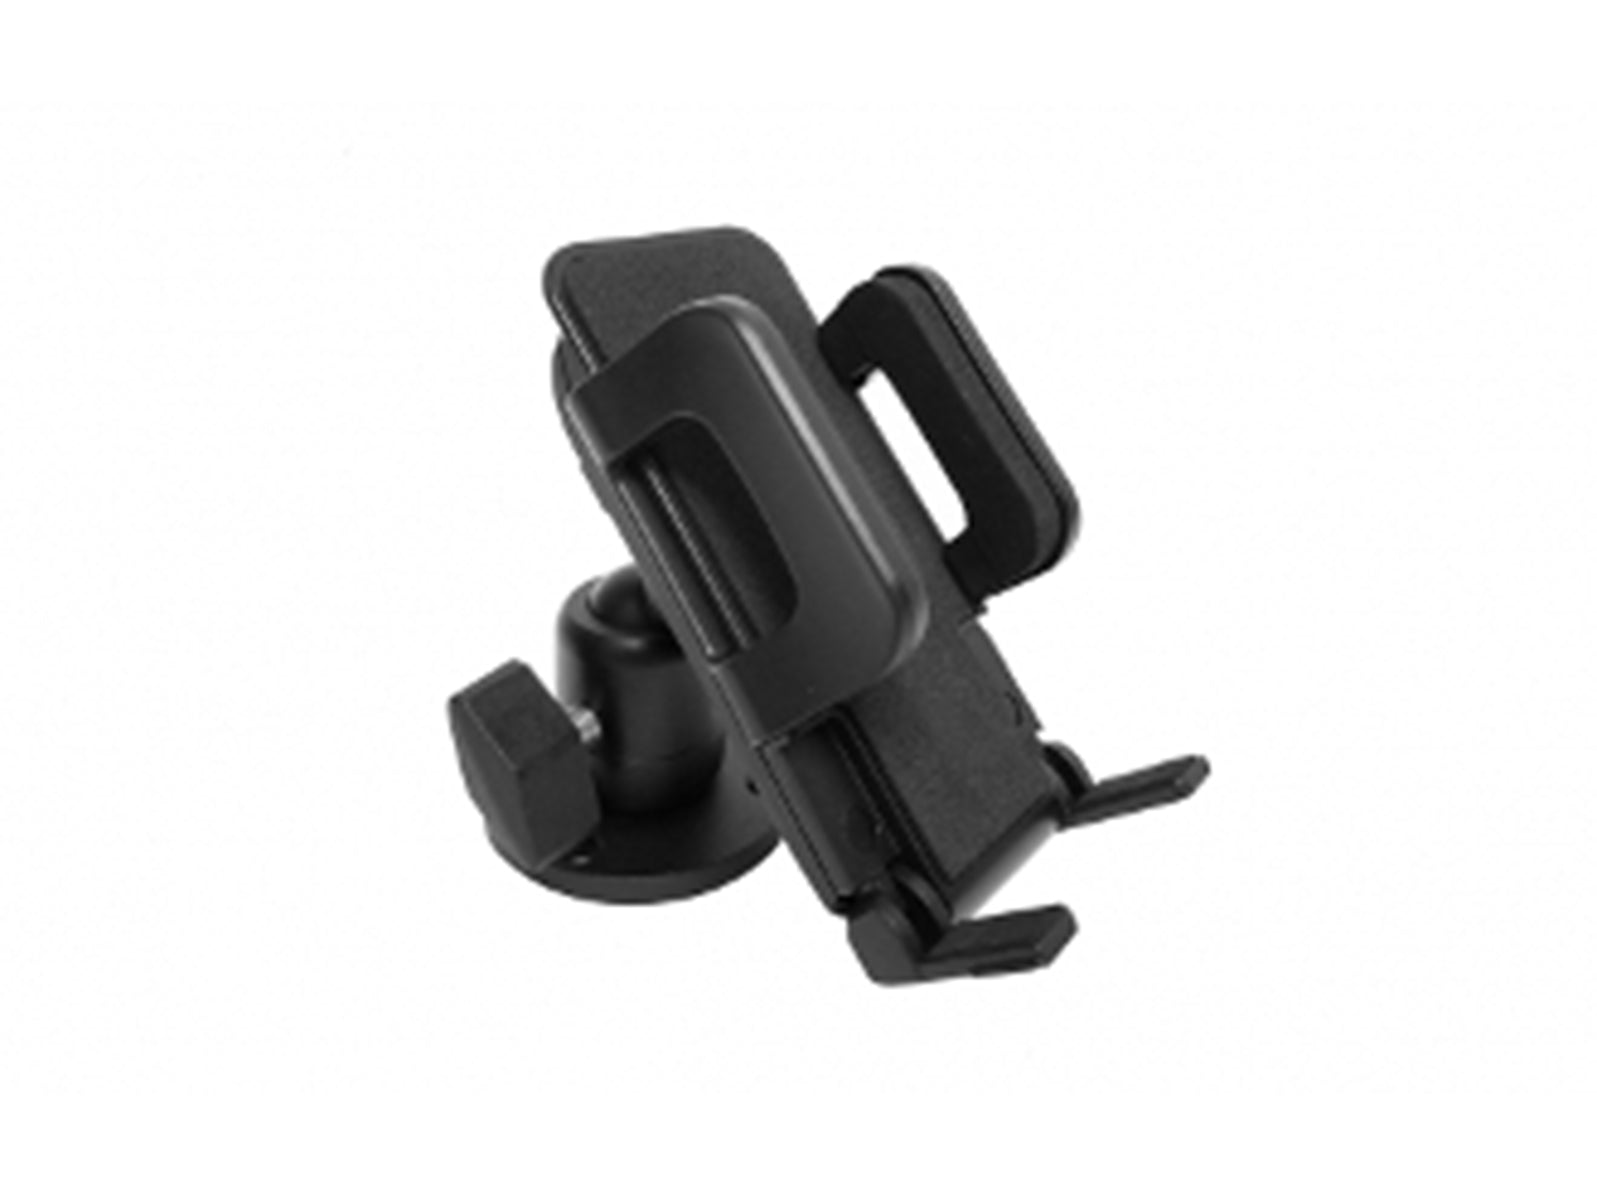 Universal Cell Phone Holder (Screw Base)